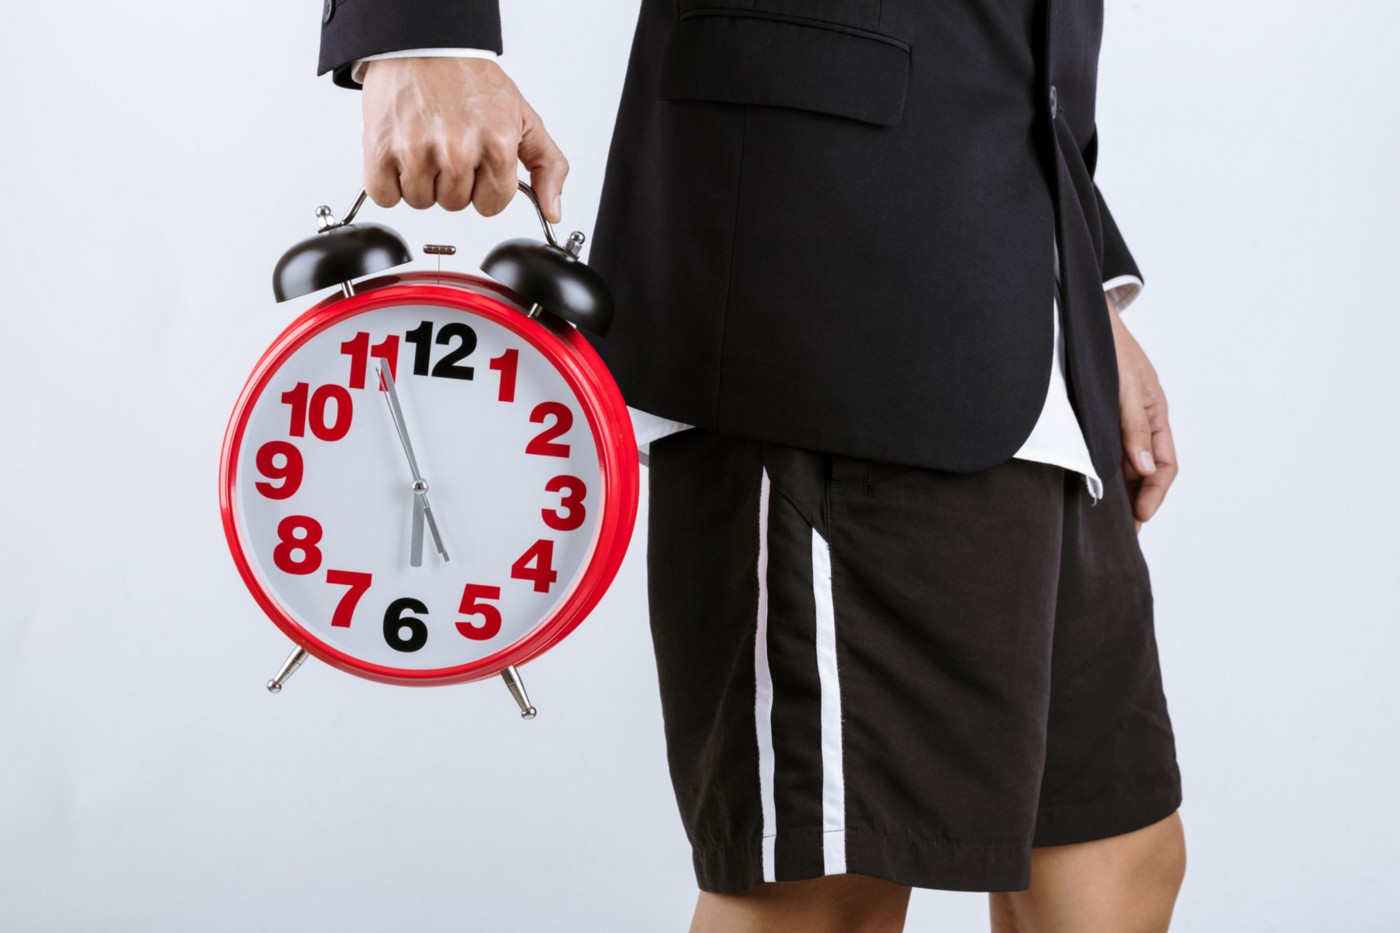 A person wearing a suit jacket and casual shorts holds up a clock.